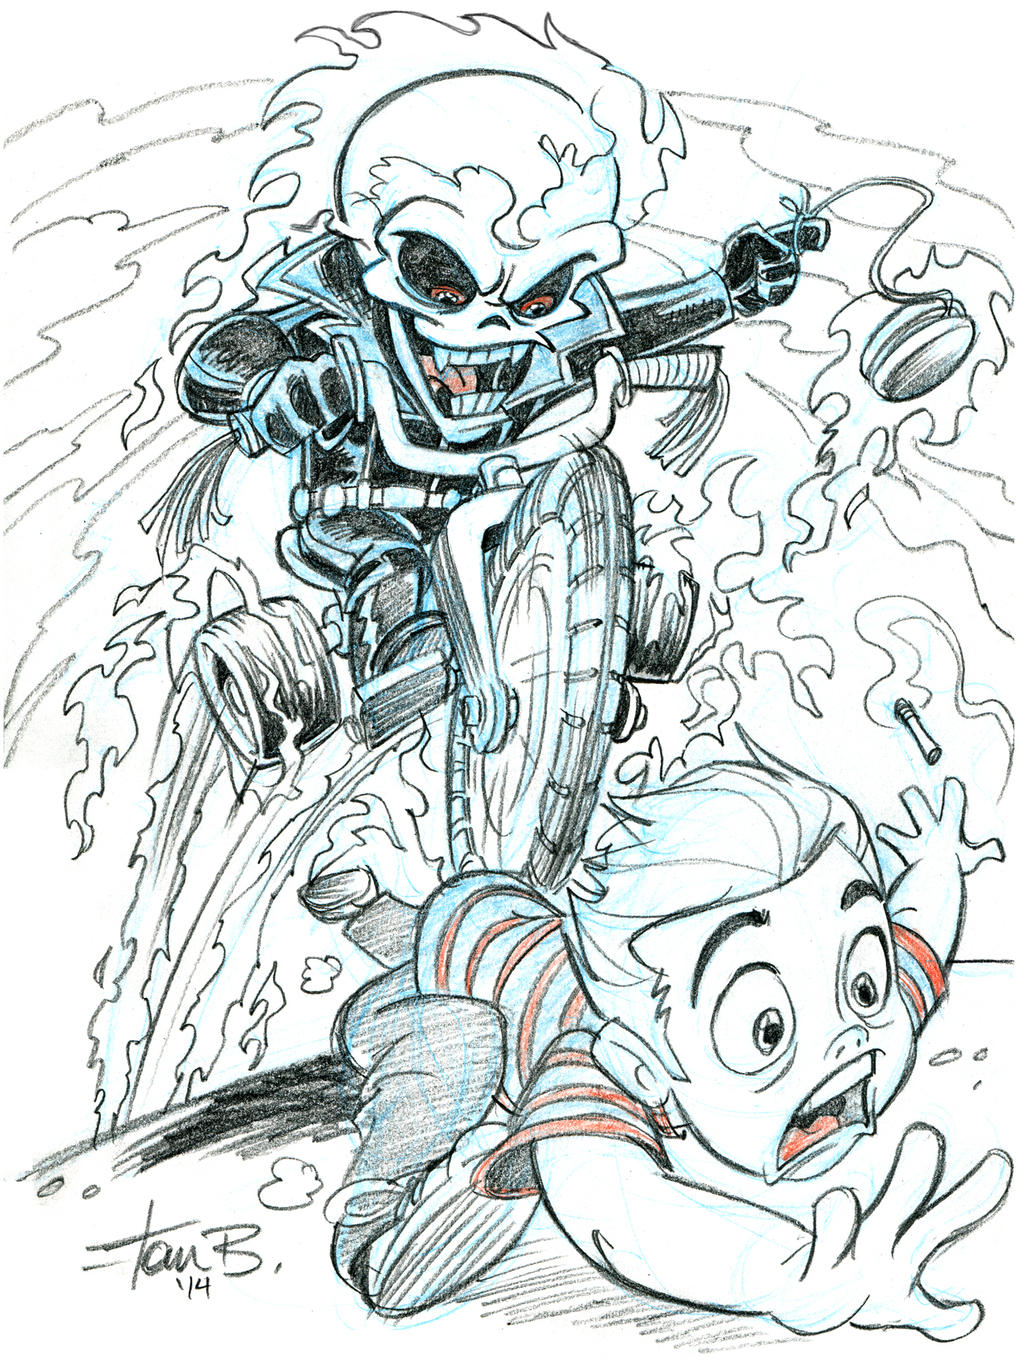 Lil' Ghost Rider- Patron sketch request by tombancroft